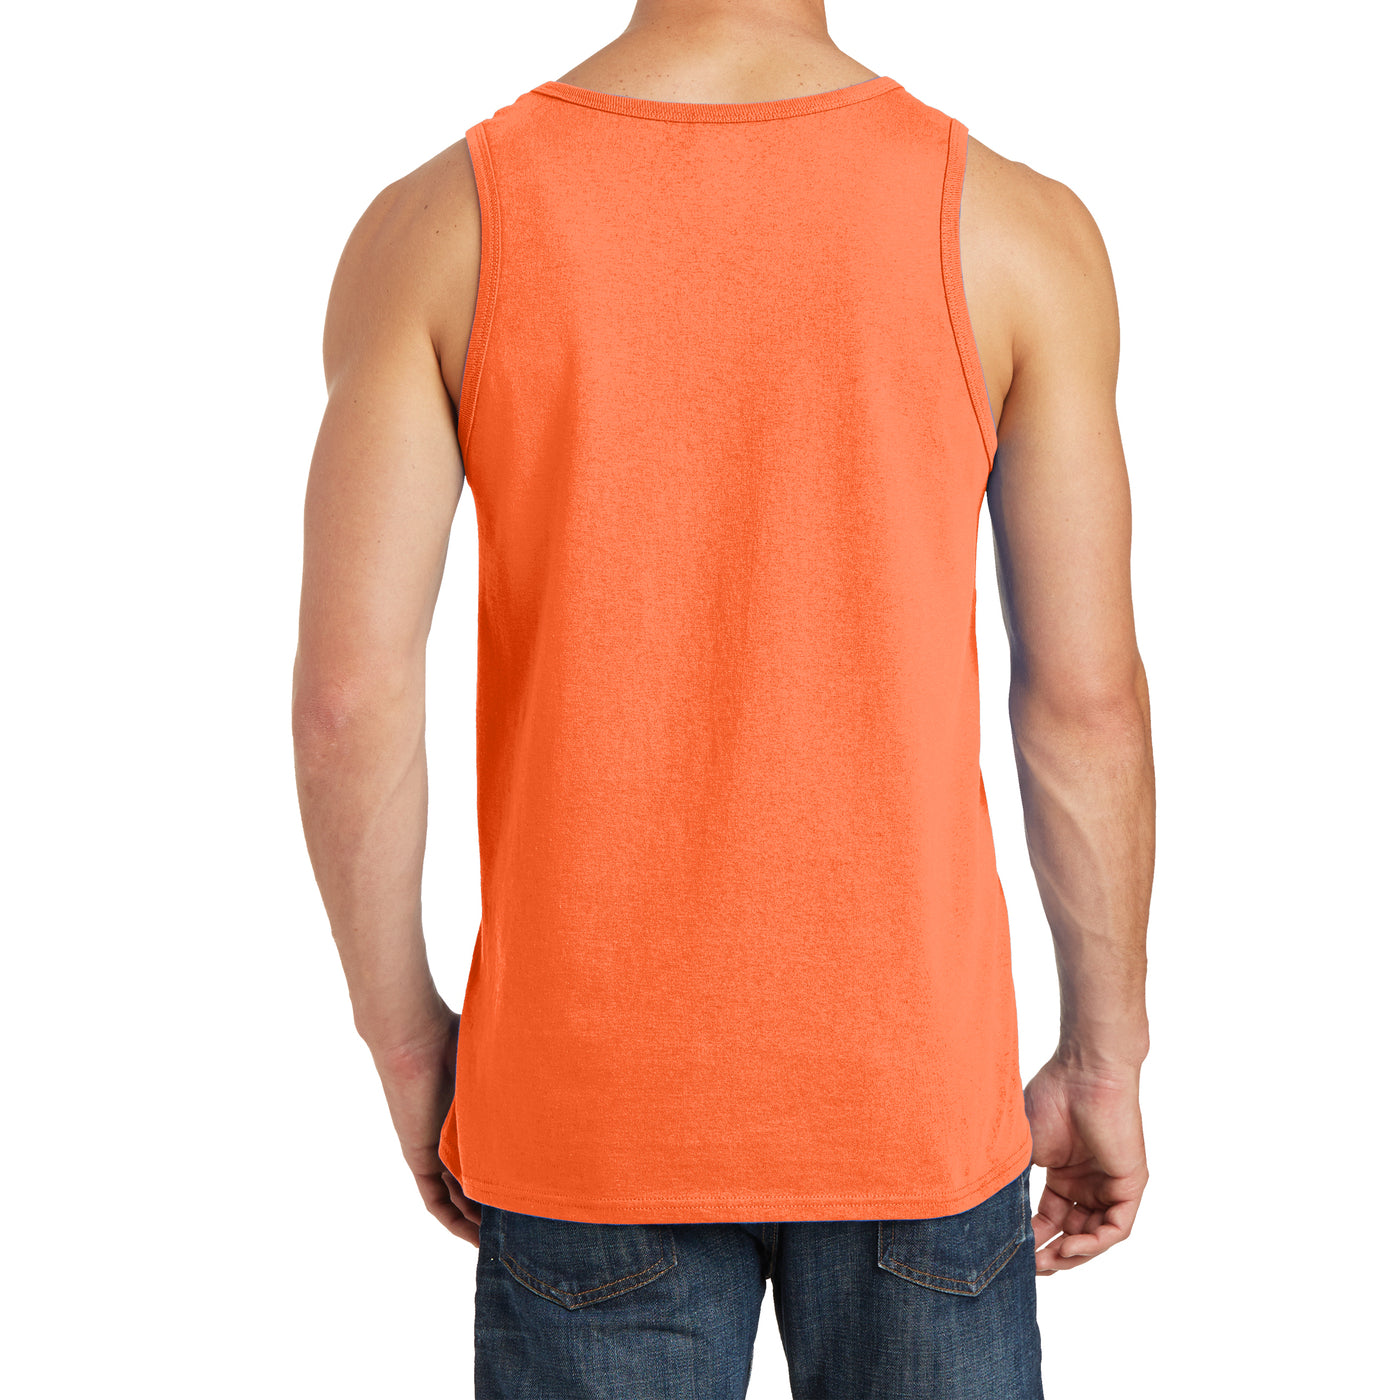 Men's Core Cotton Tank Top - Neon Orange - Back